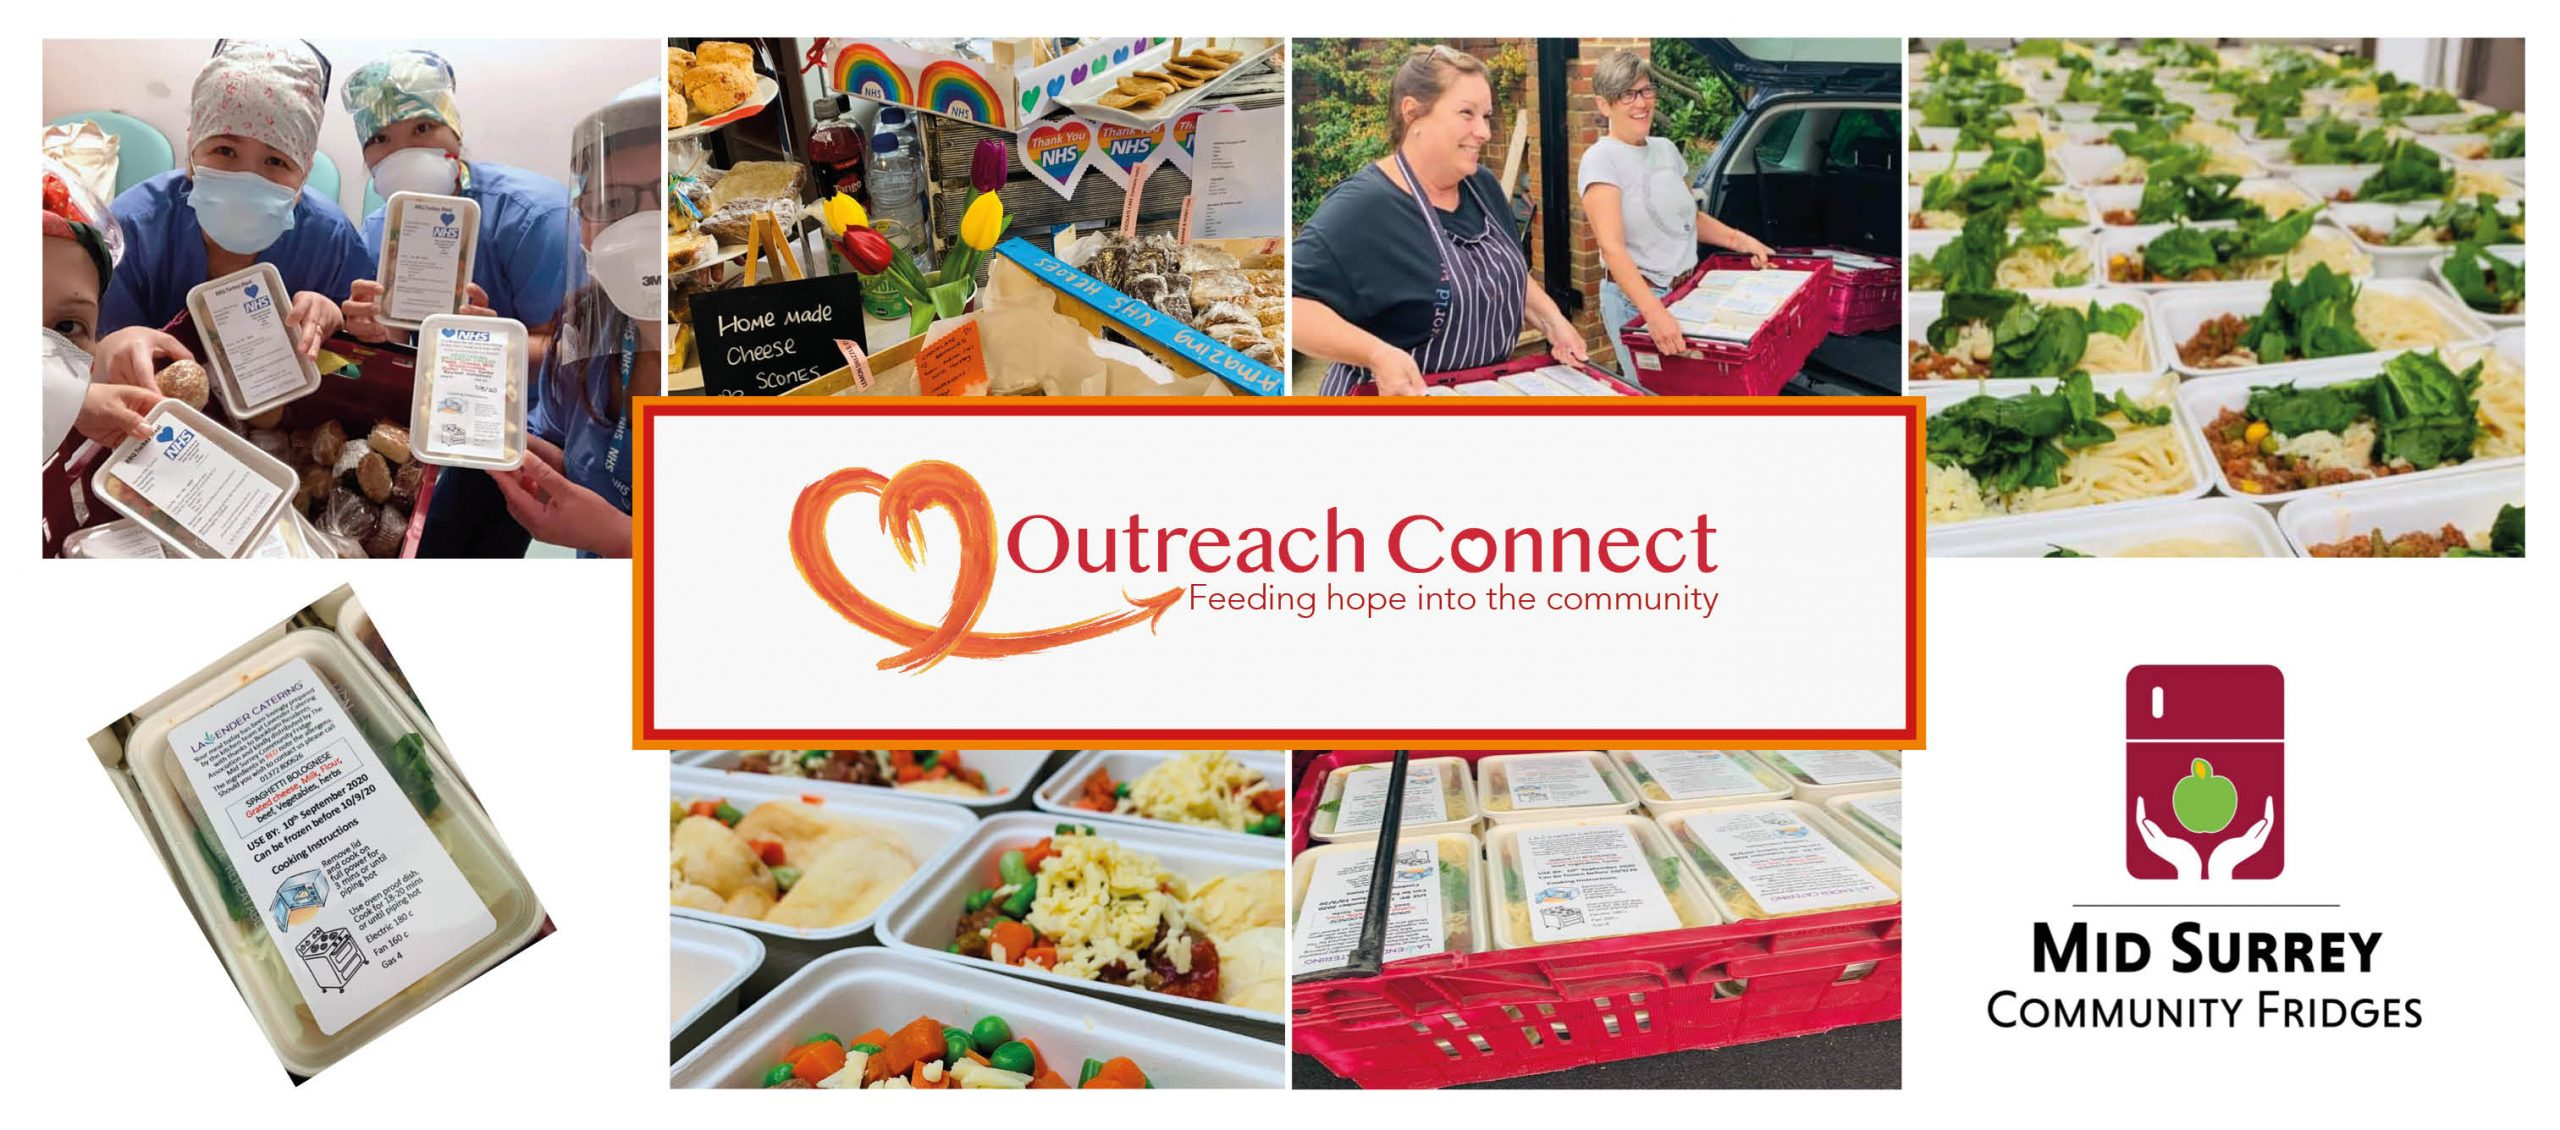 Outreach Connect Heading